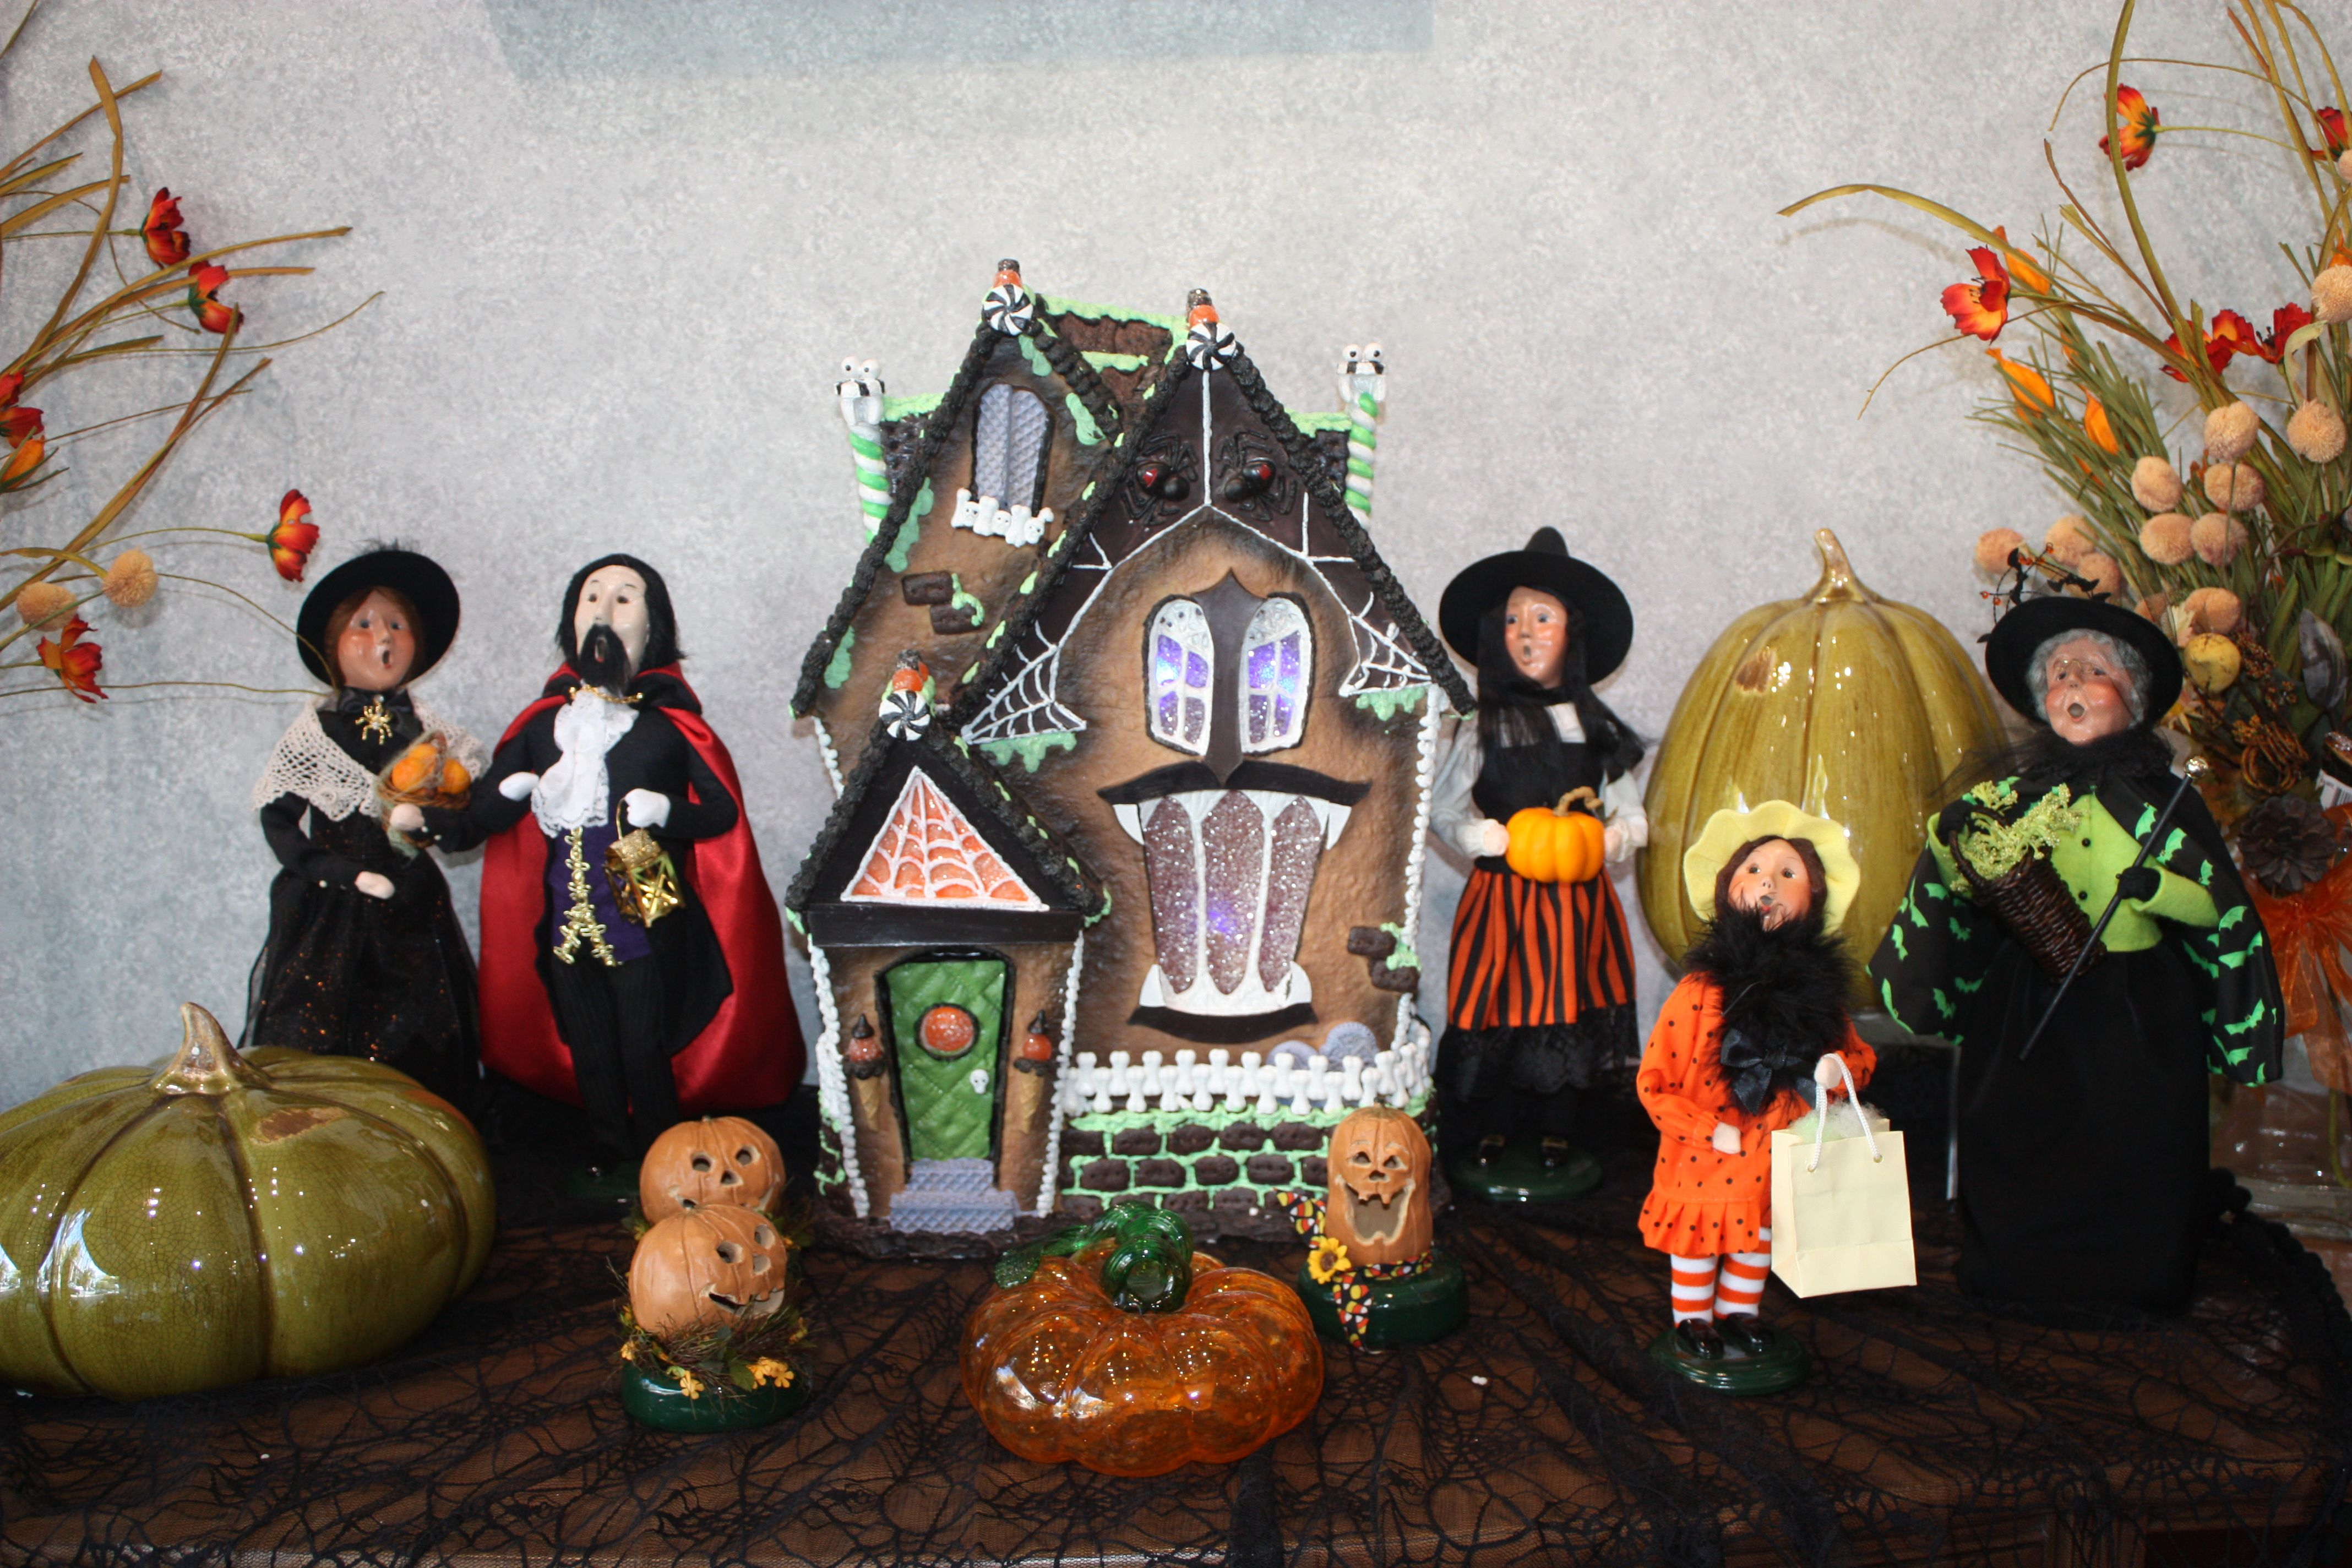 Halloween Buyers Choice decorations. A great display to